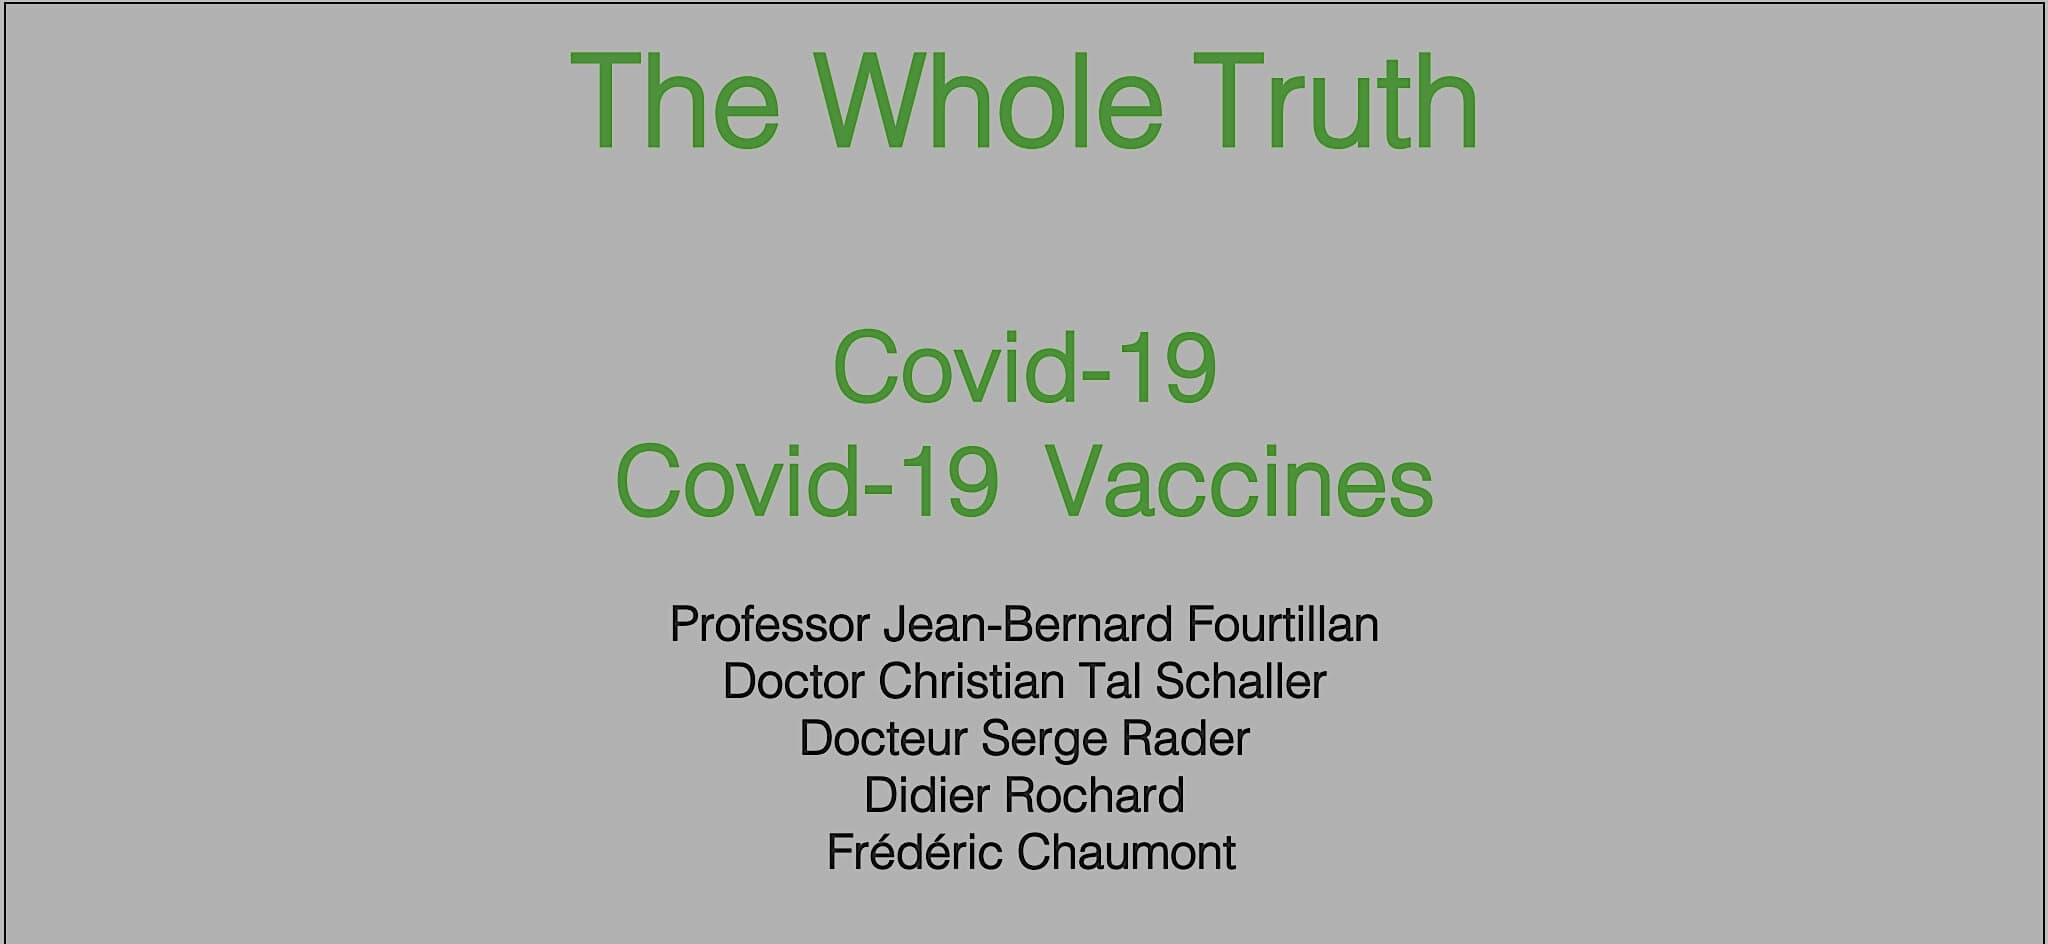 COVID-19 VACCINES – THE WHOLE TRUTH